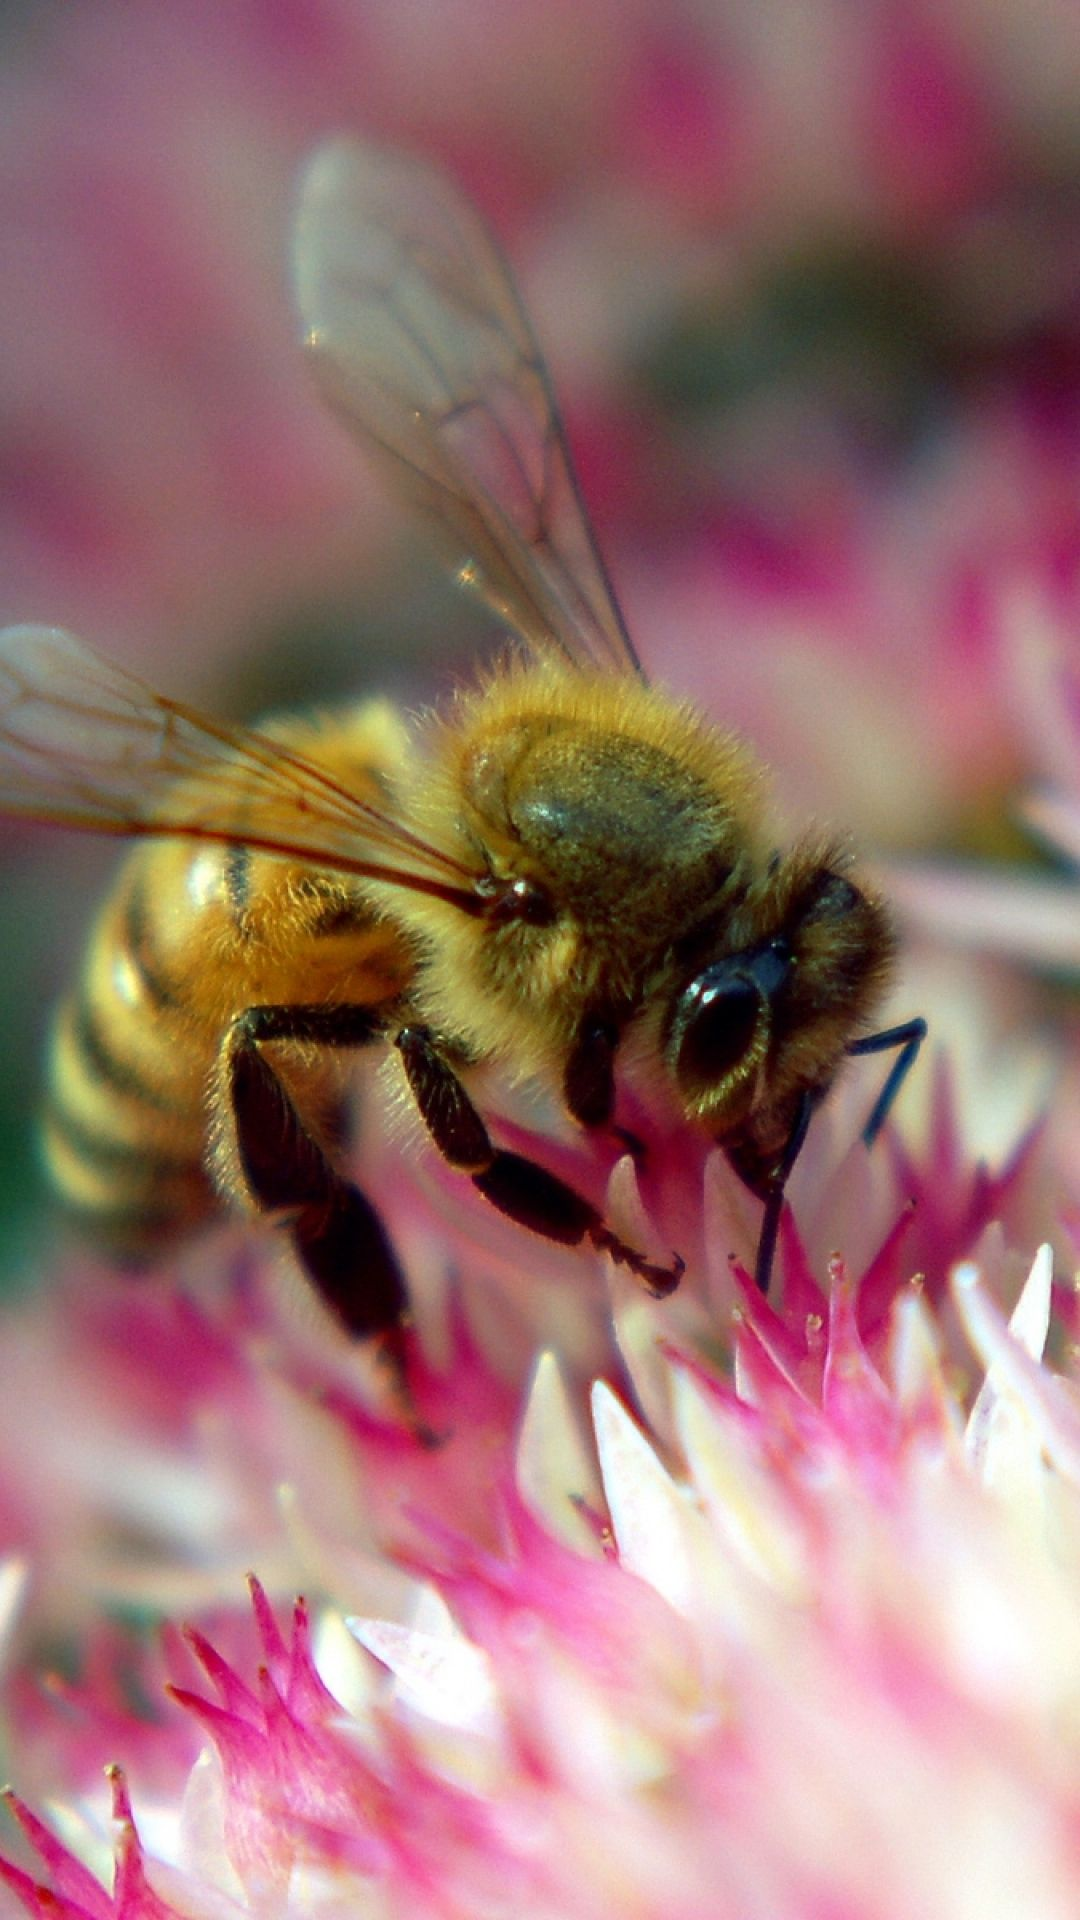 Flower Bee Pollination Insect Iphone 6 Wallpaper Bee On Flower Working Bee Bee